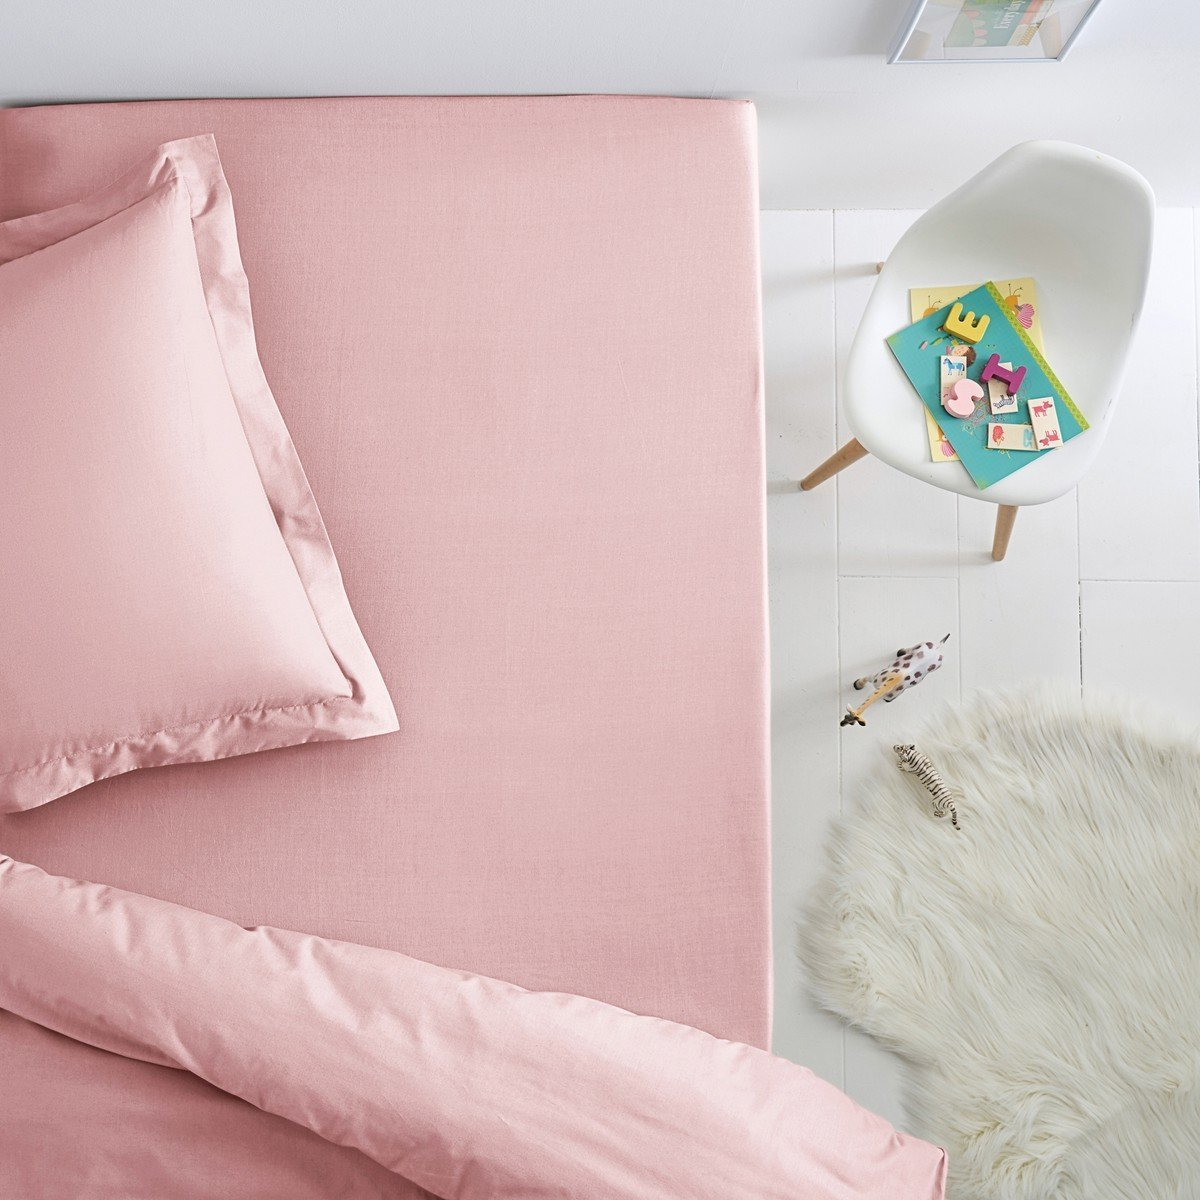 La Redoute Cotton Jersey Fitted Sheet For Child's Bed Pink Size Single (90 X 190Cm)